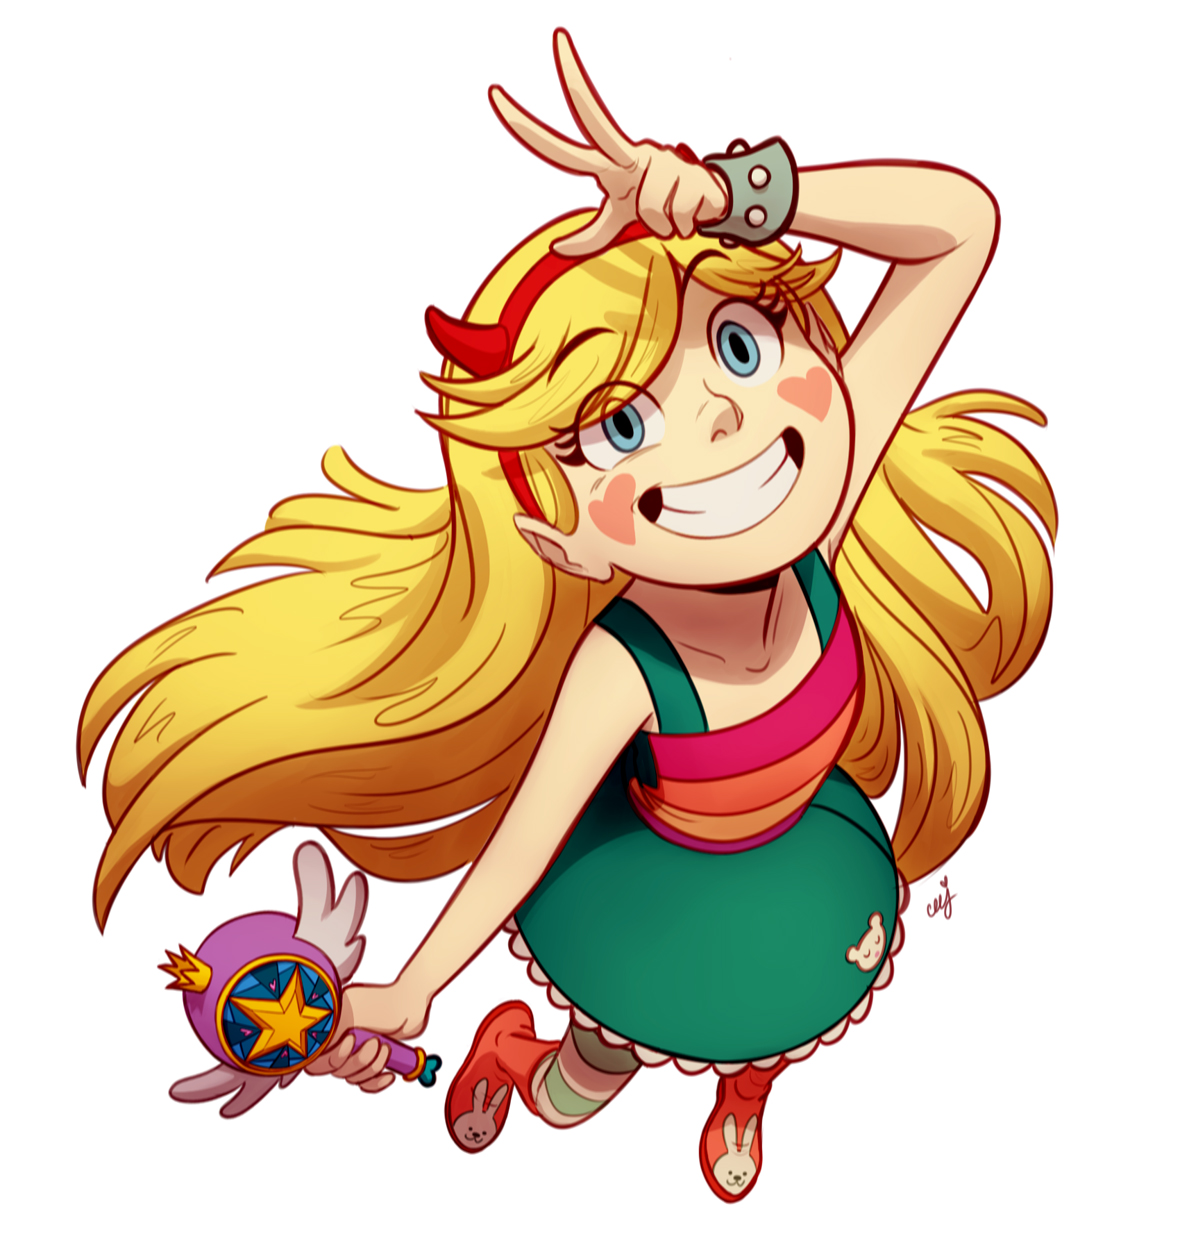 Star Butterfly Star Vs Las Fuerzas Del Mal Anime 233030 Hd